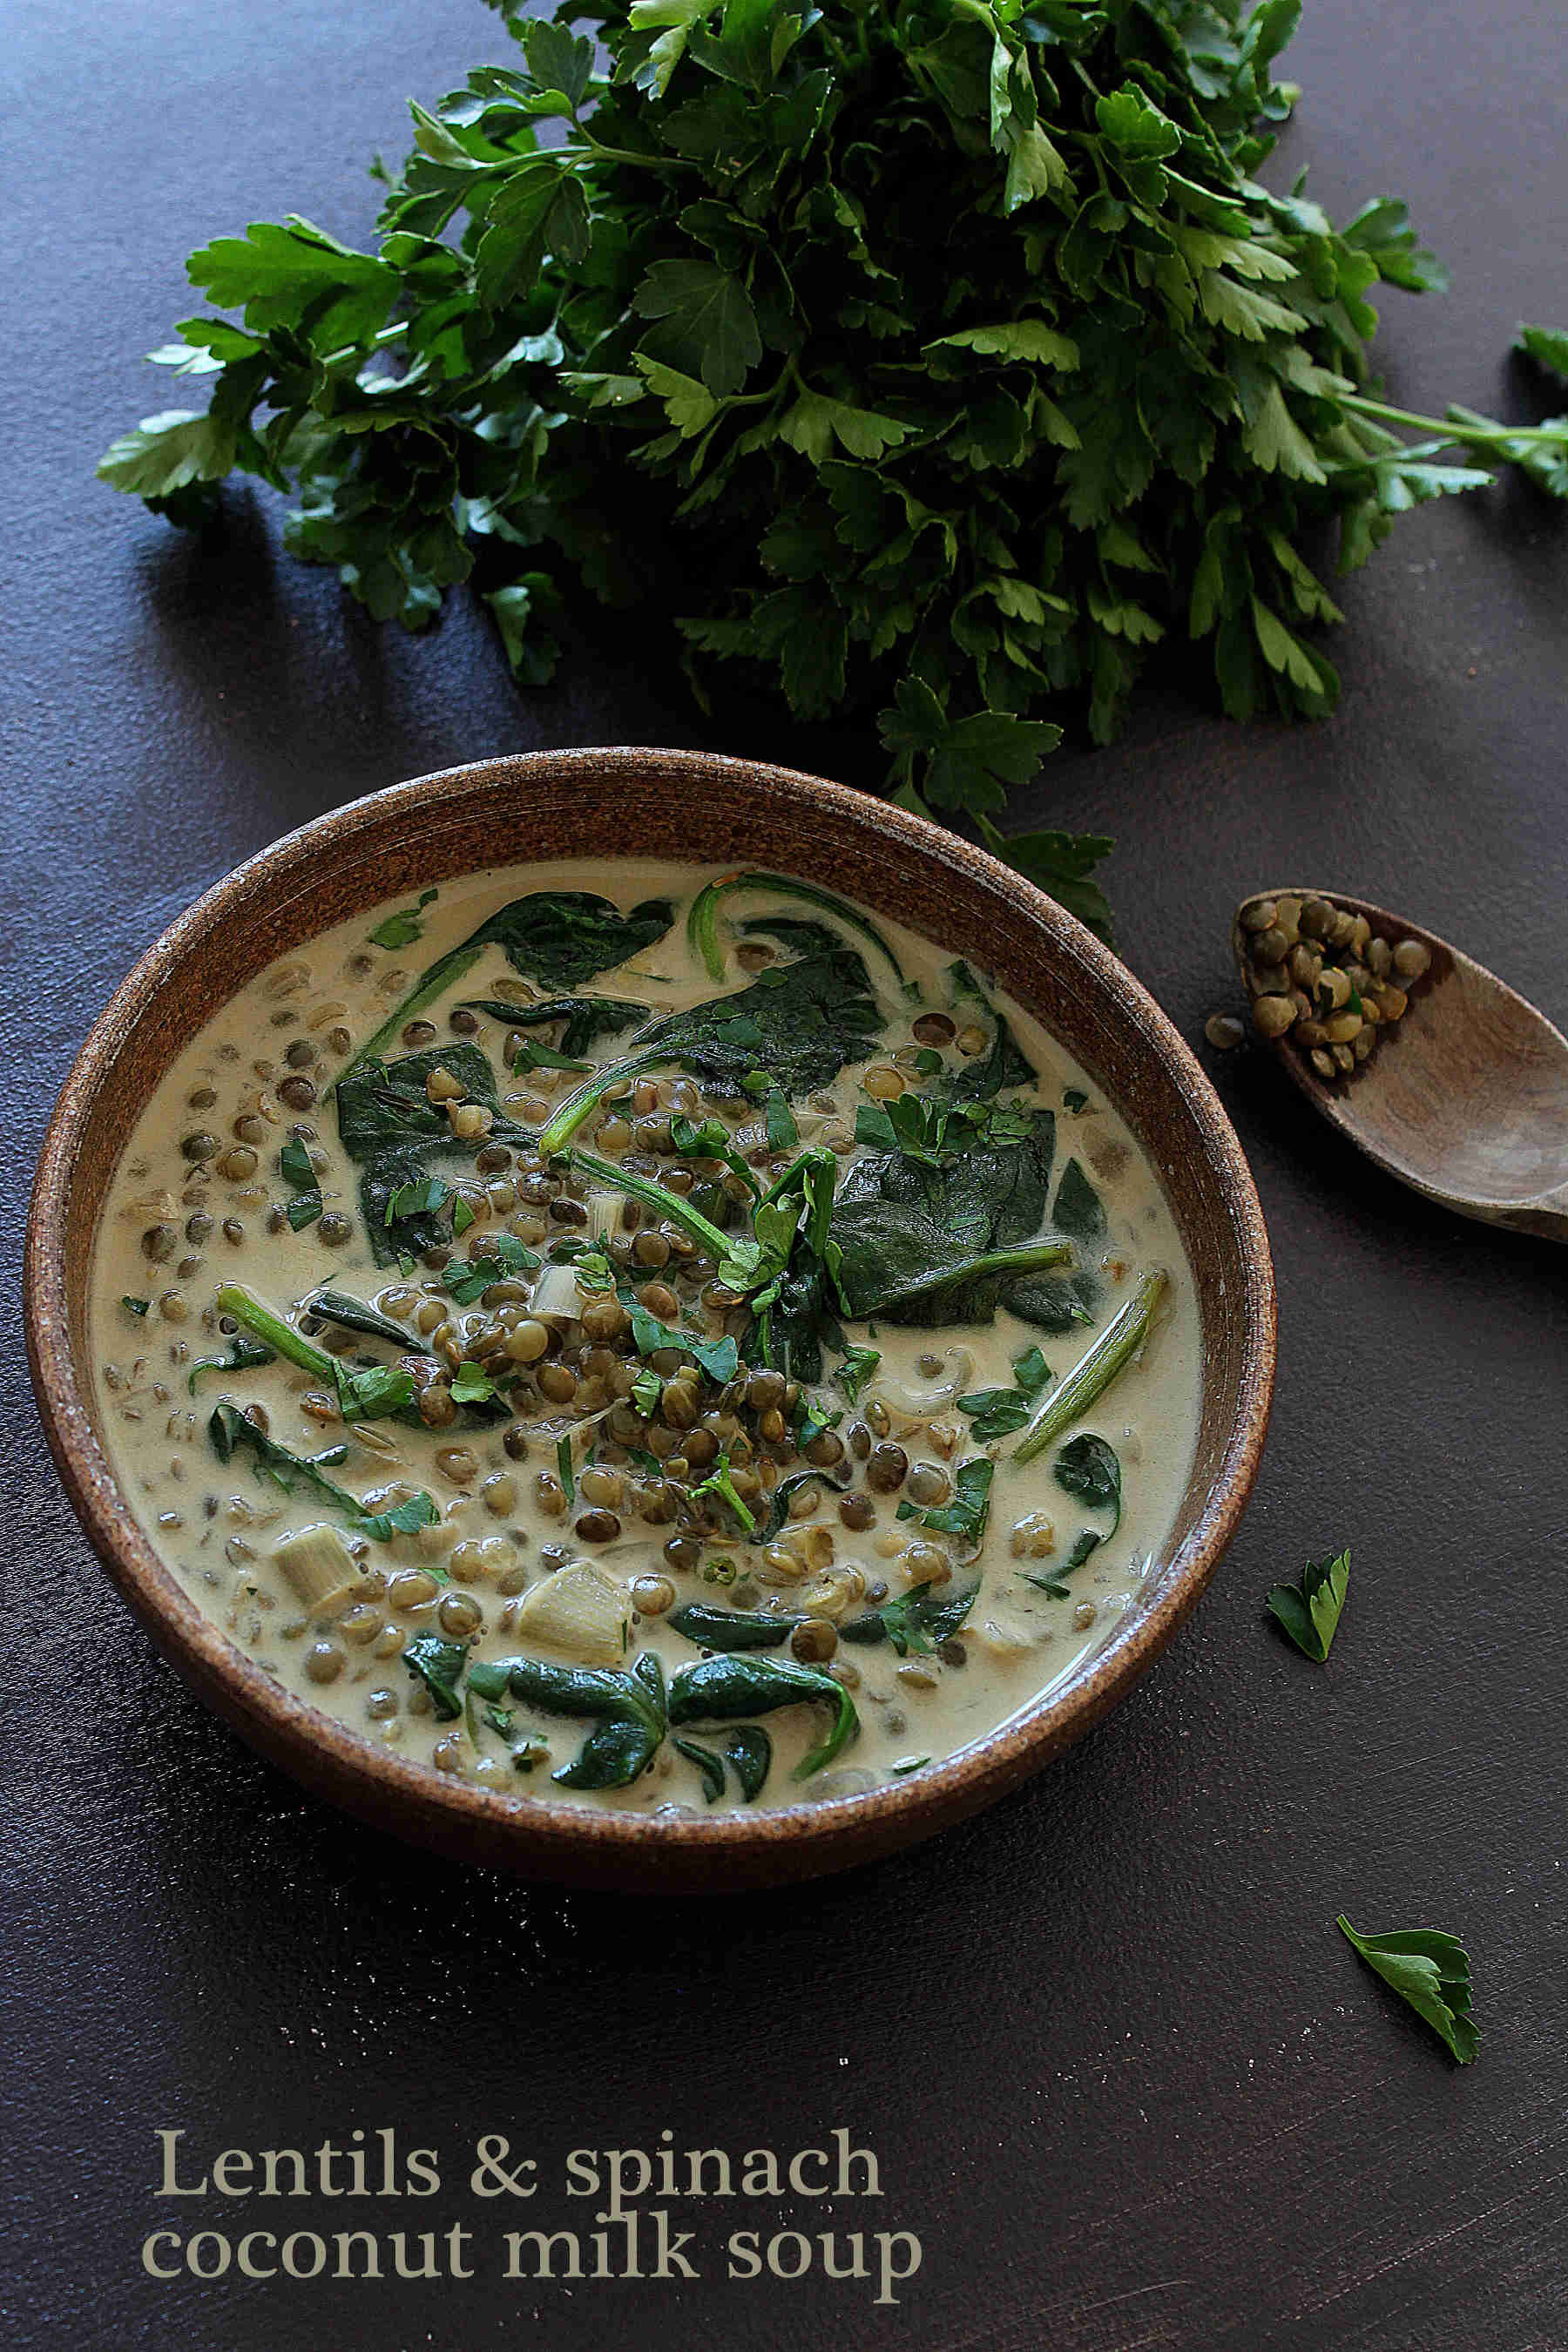 Lentils & spinach coconut milk soup